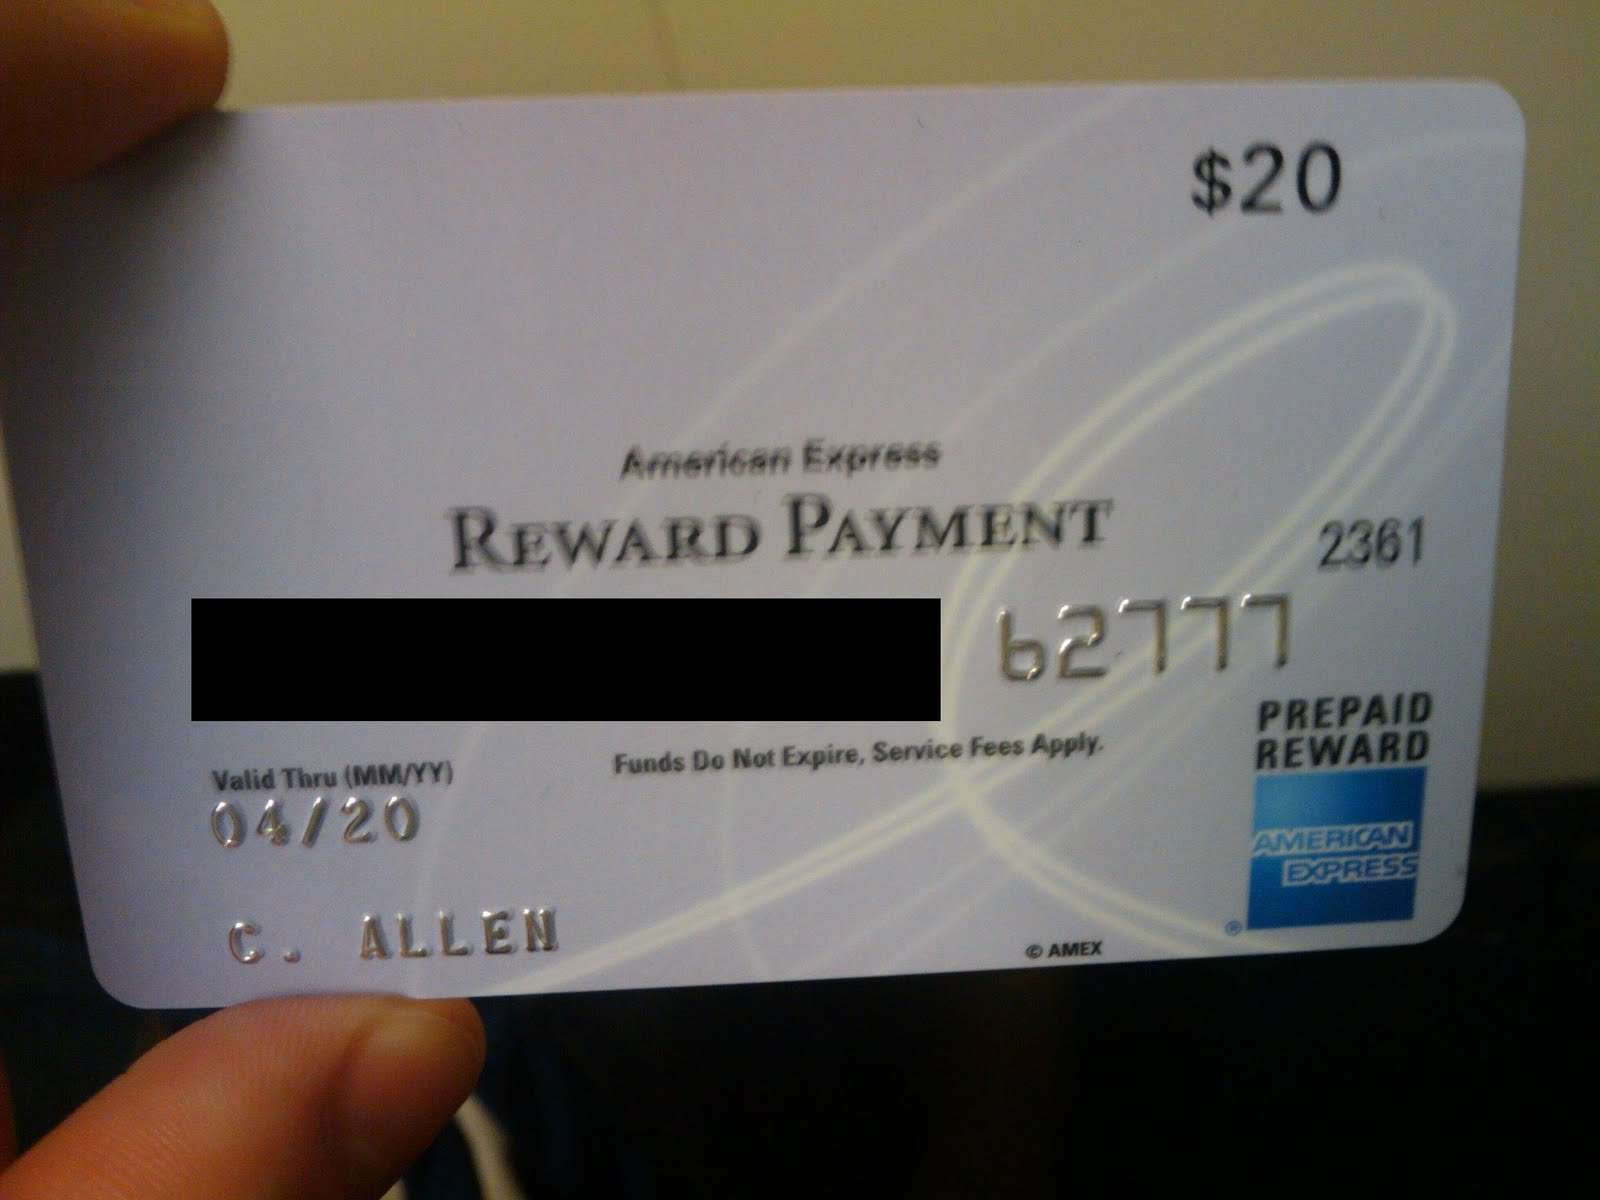 Chris Allen's Spectacularly Mediocre Blog: American Express Gift Cards